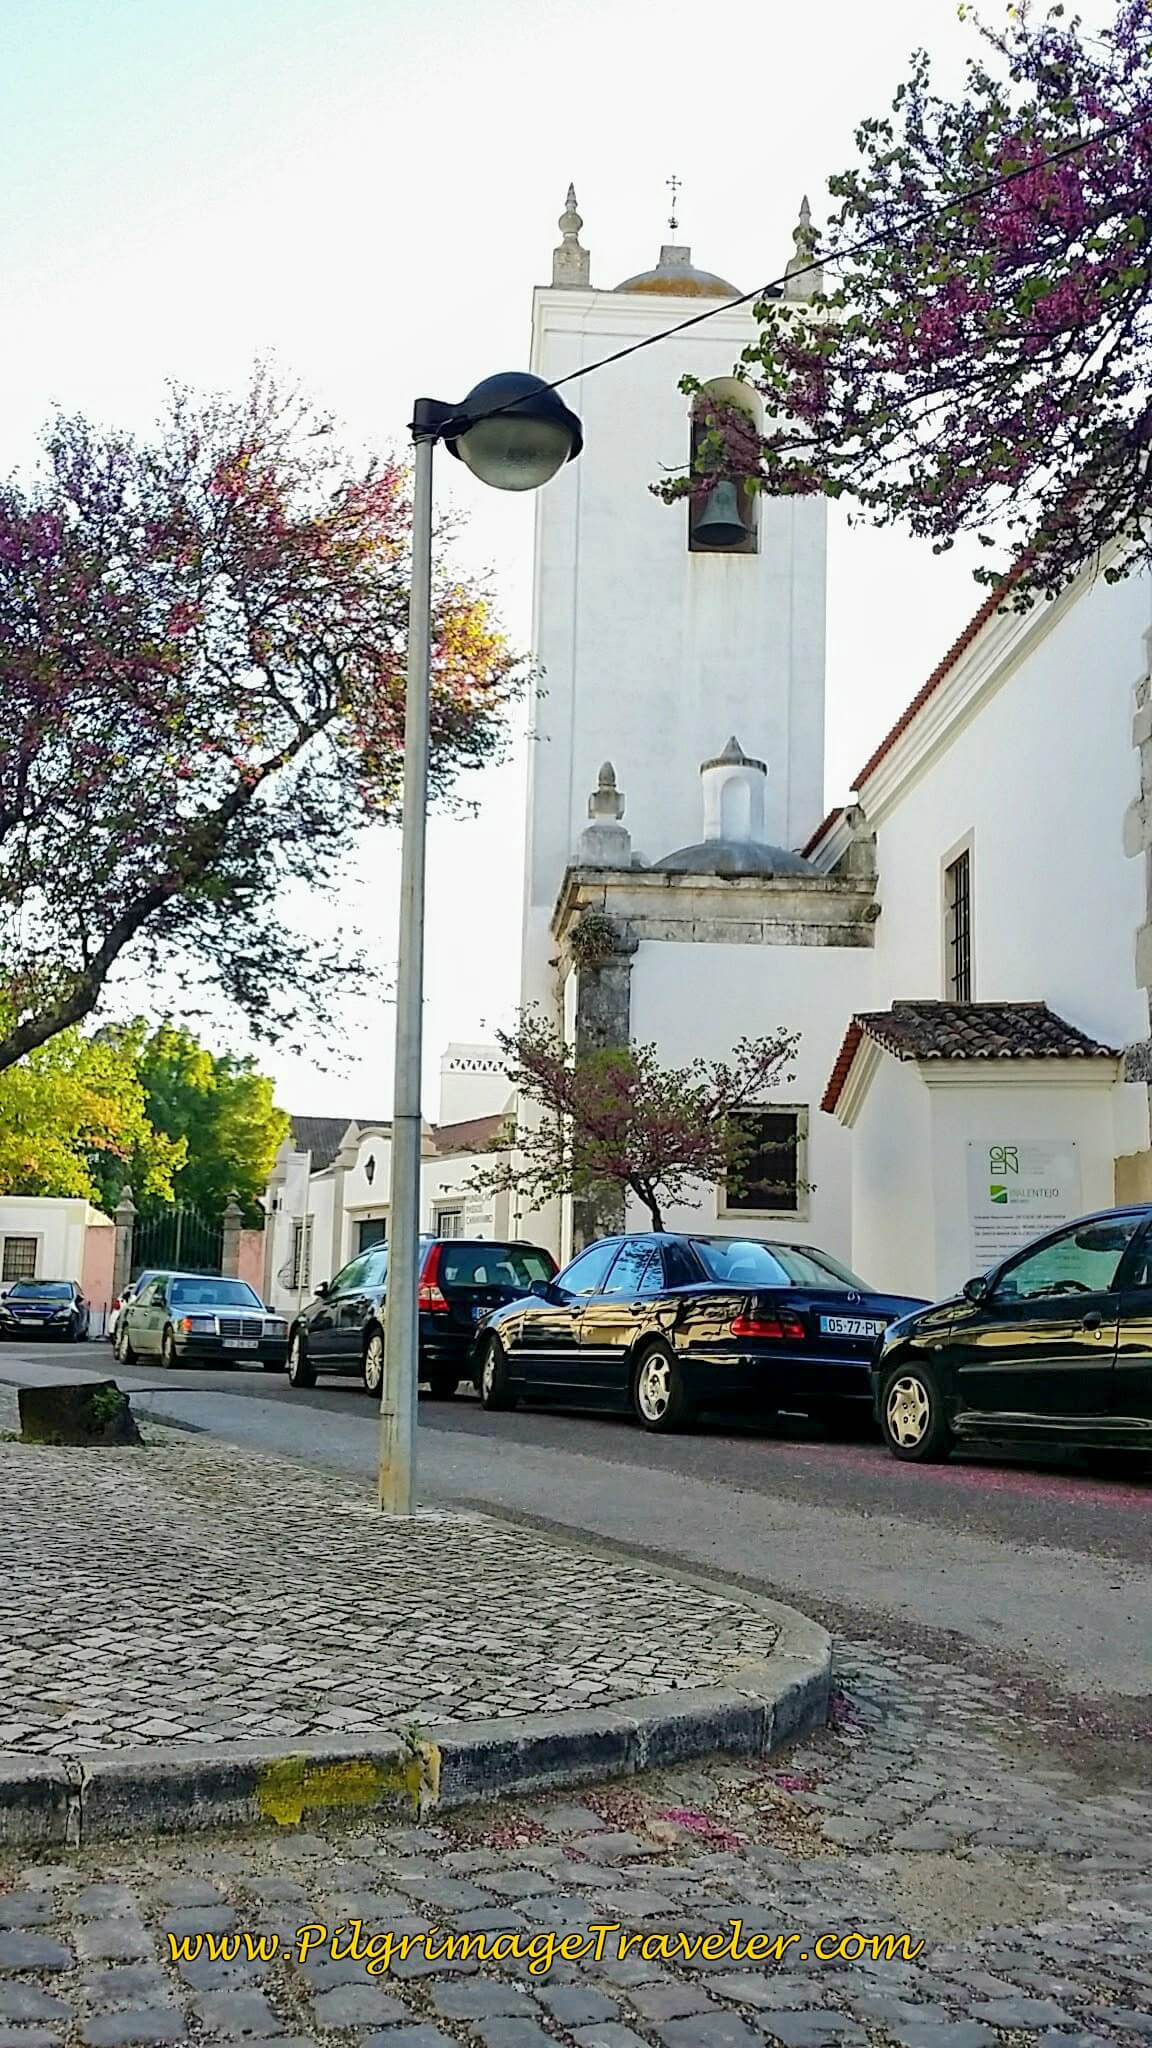 Small Yellow Arrow on Curb by the Church in the Largo do Alcáçova, Santarém, Portugal